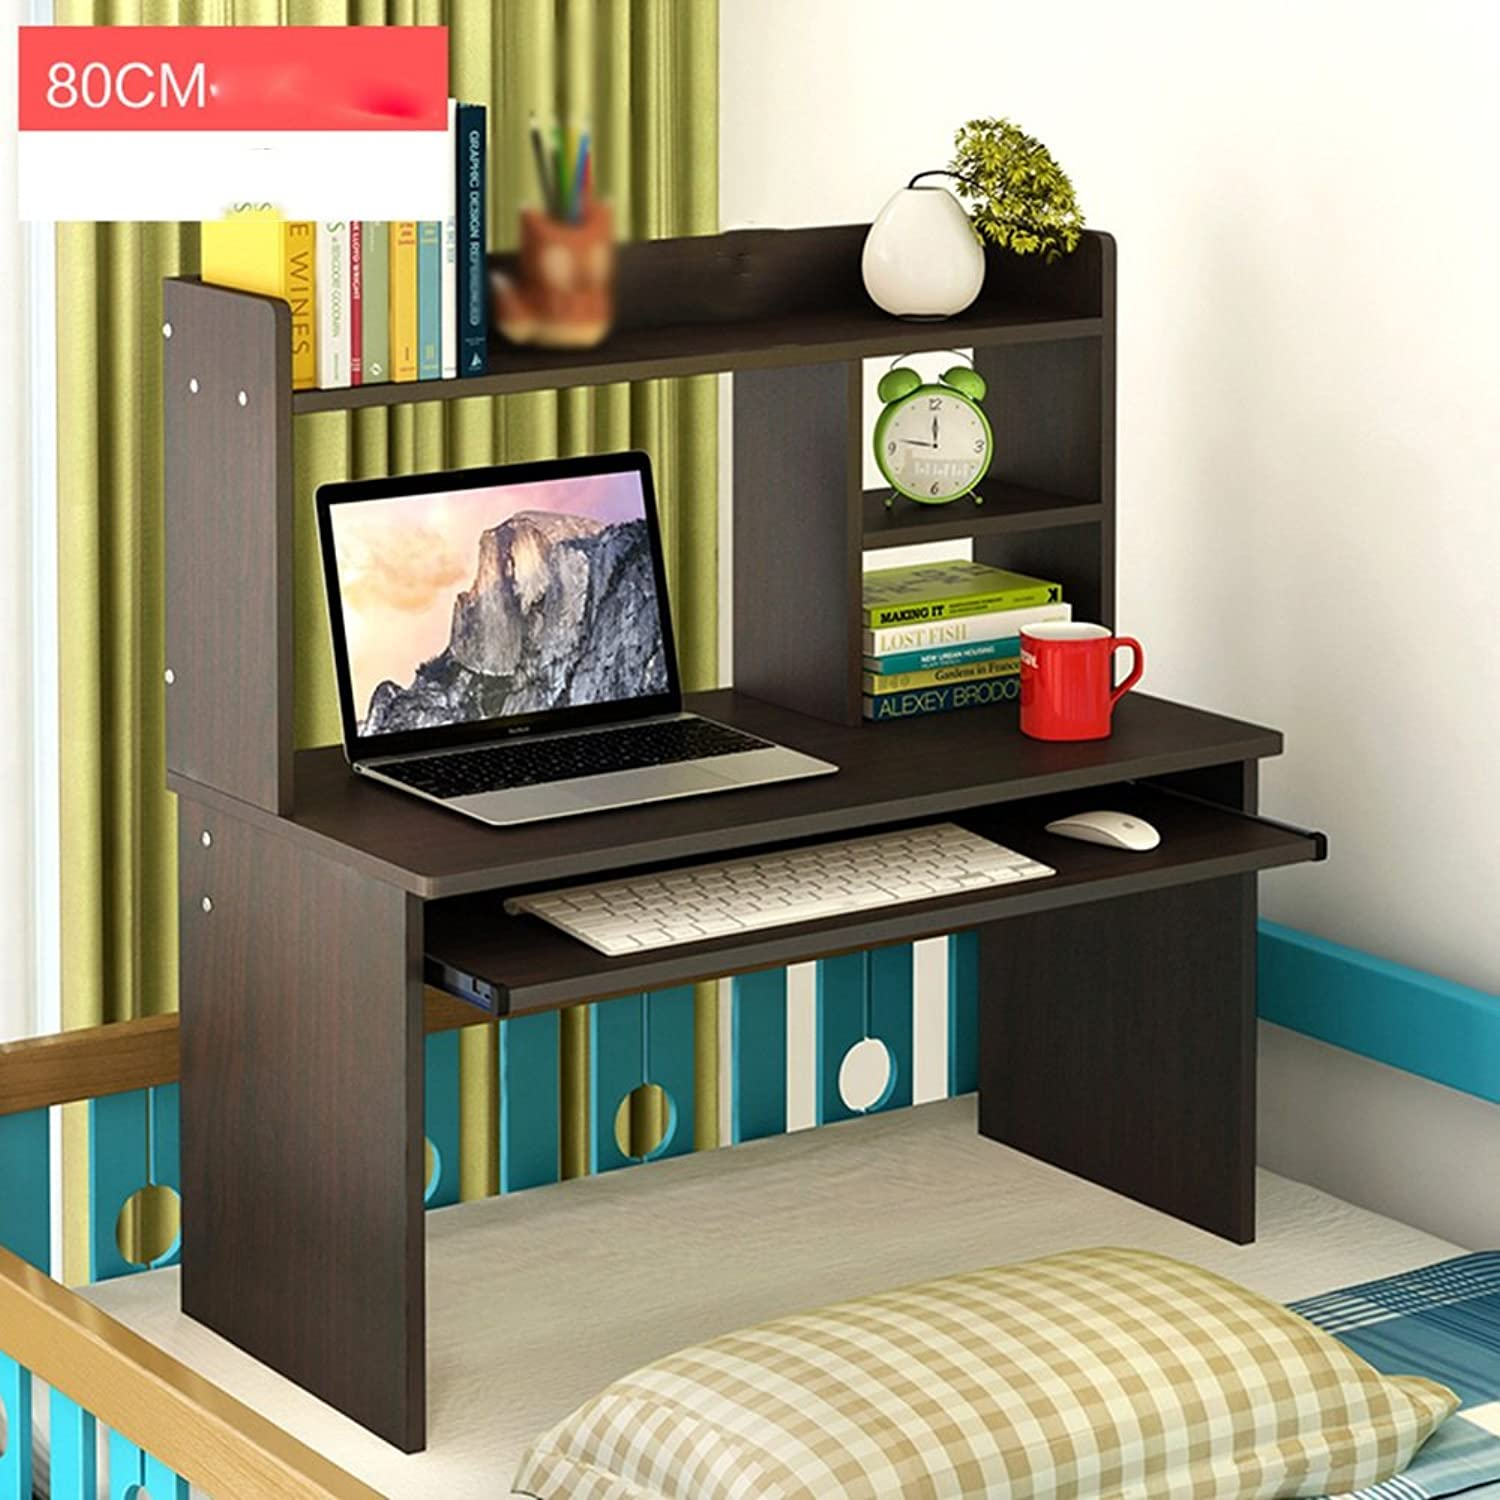 ZXQZ zhuozi Bed Computer Desk Lazy Table Simple Bedroom Study Small ...